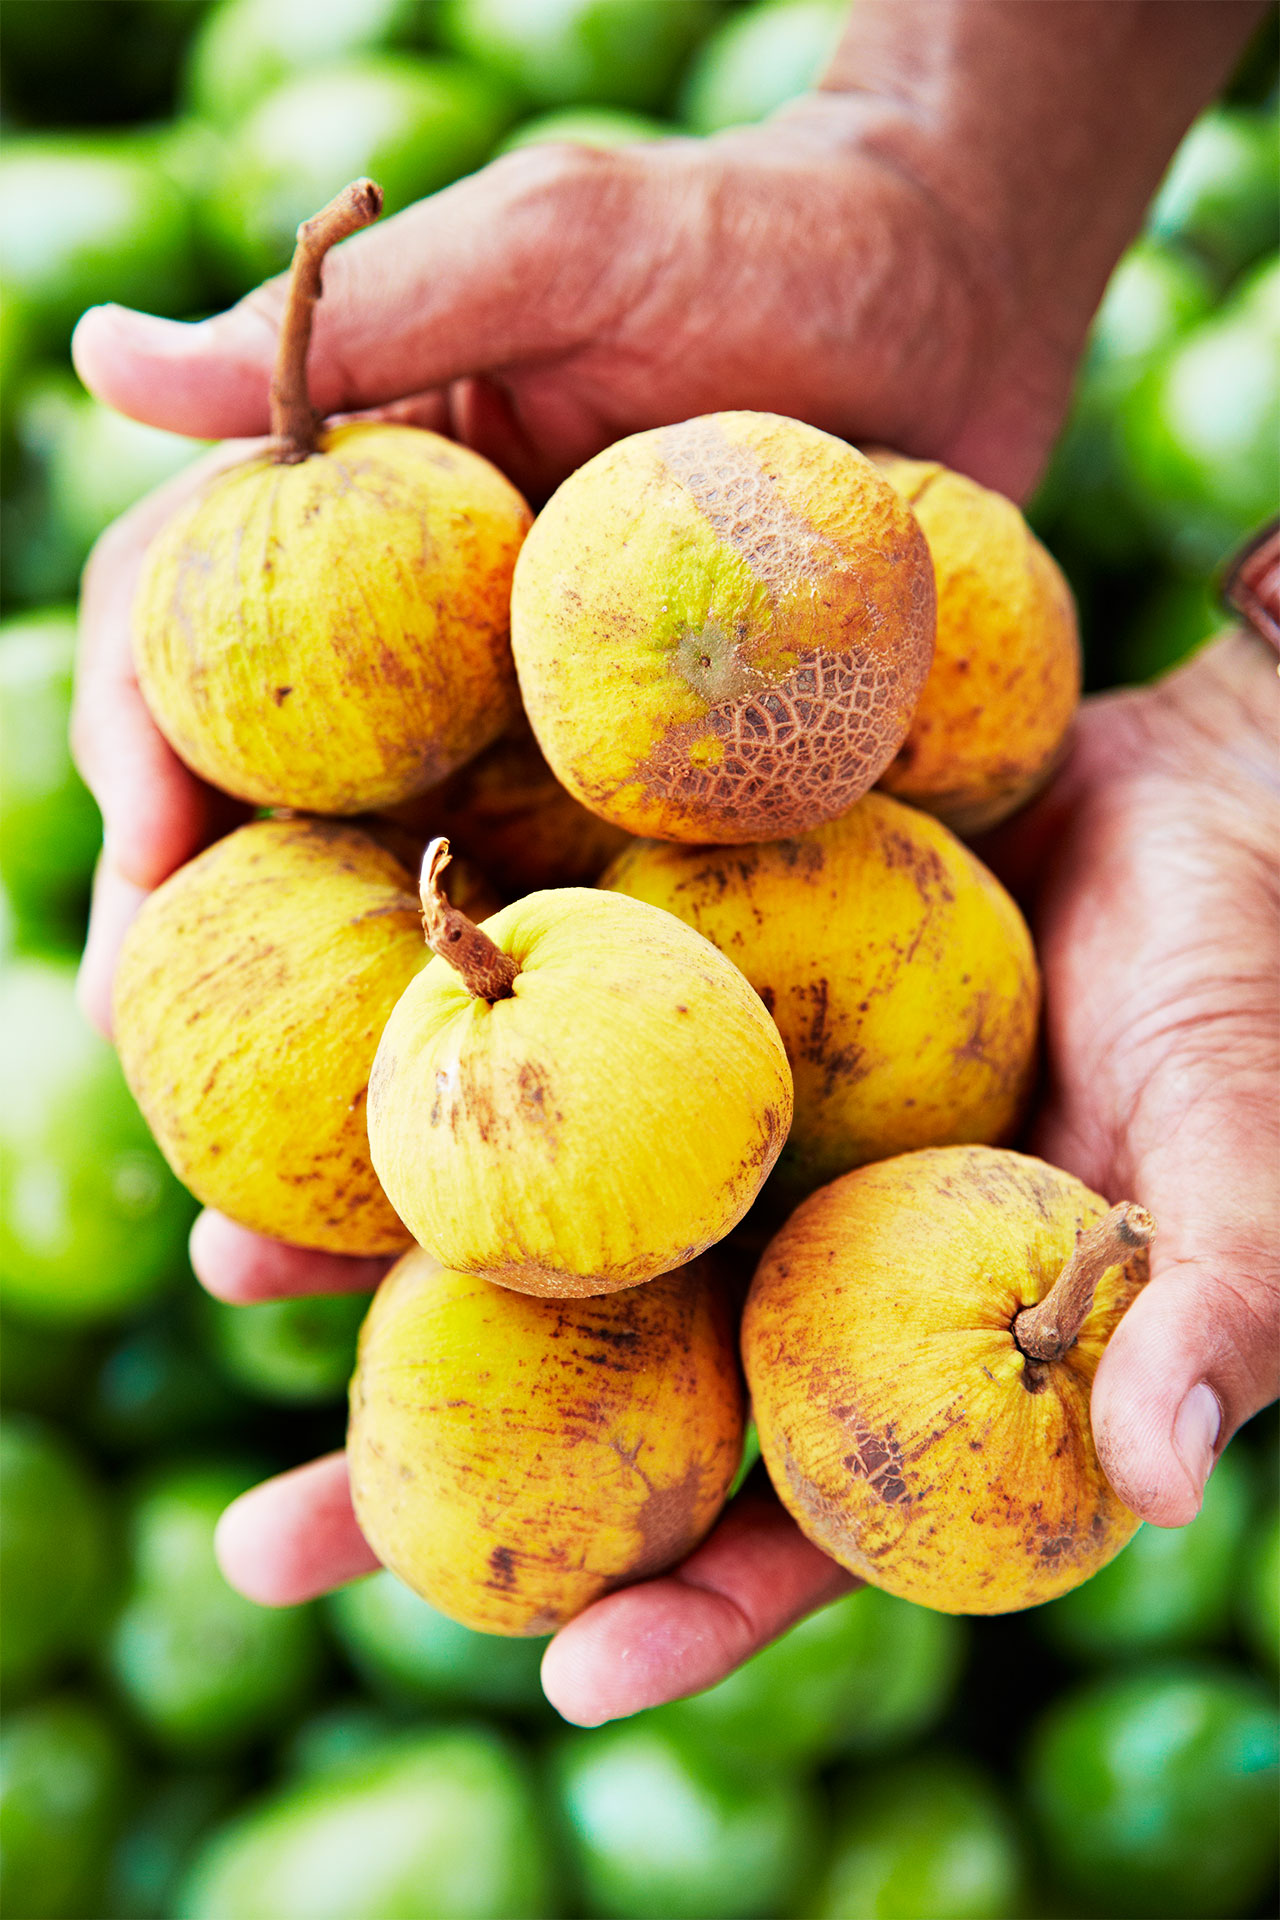 Santol_Philippines_Fruit_Hands-with-fruit_tropical